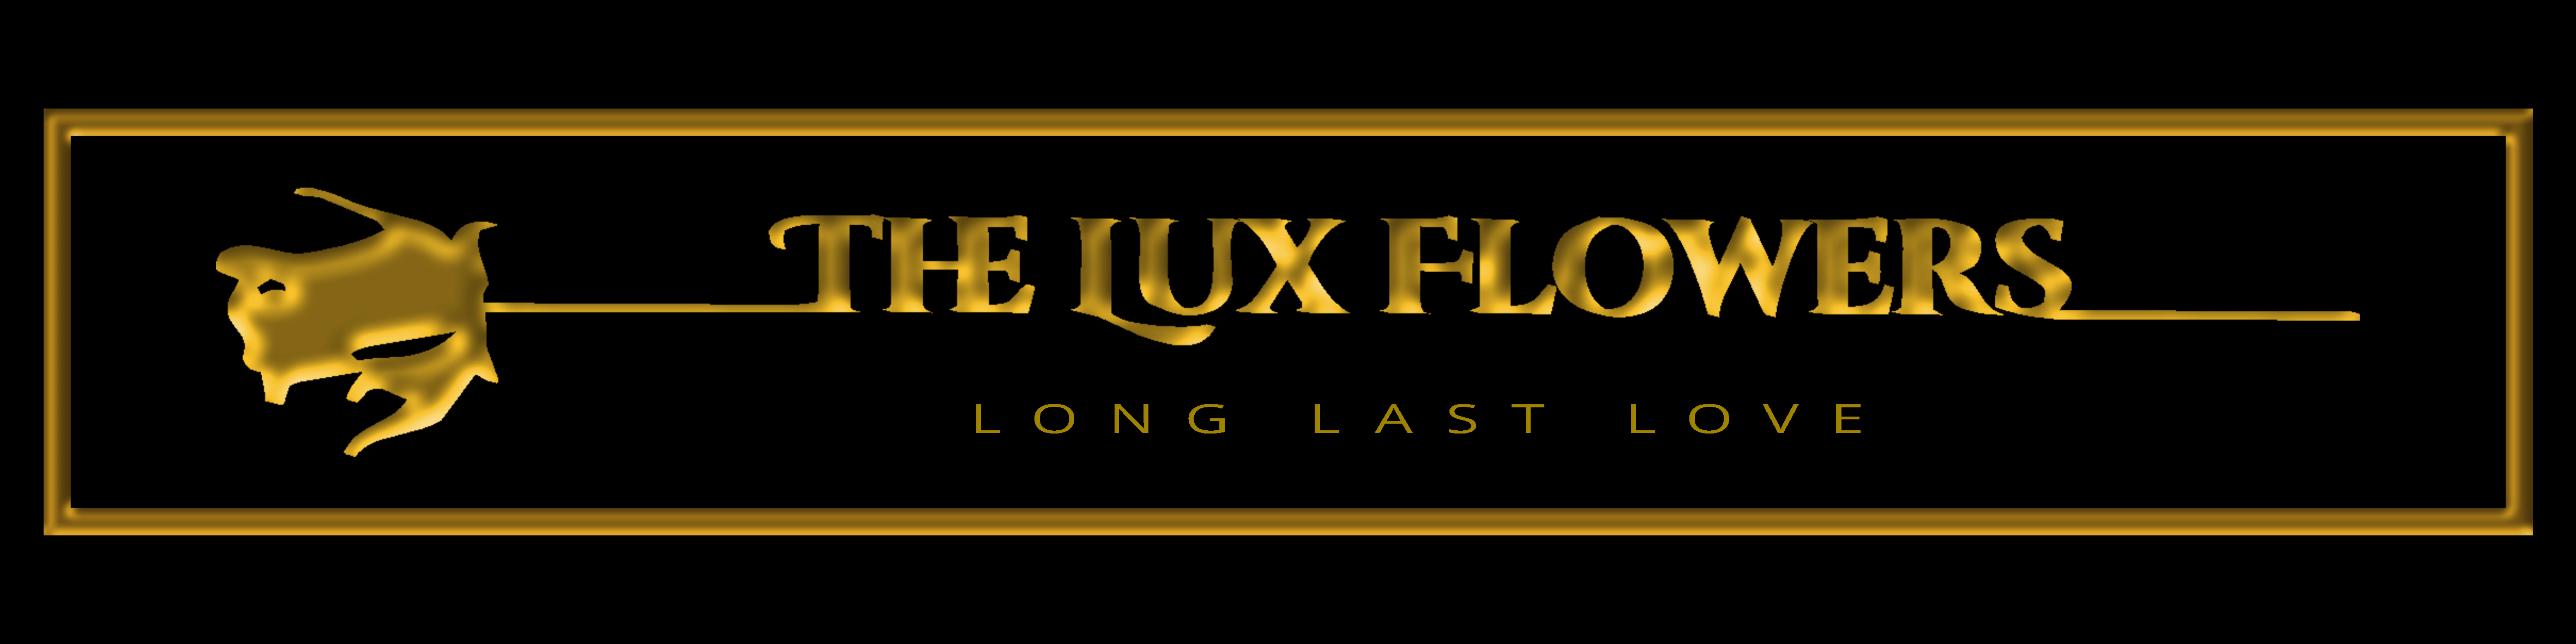 theluxflowers.com